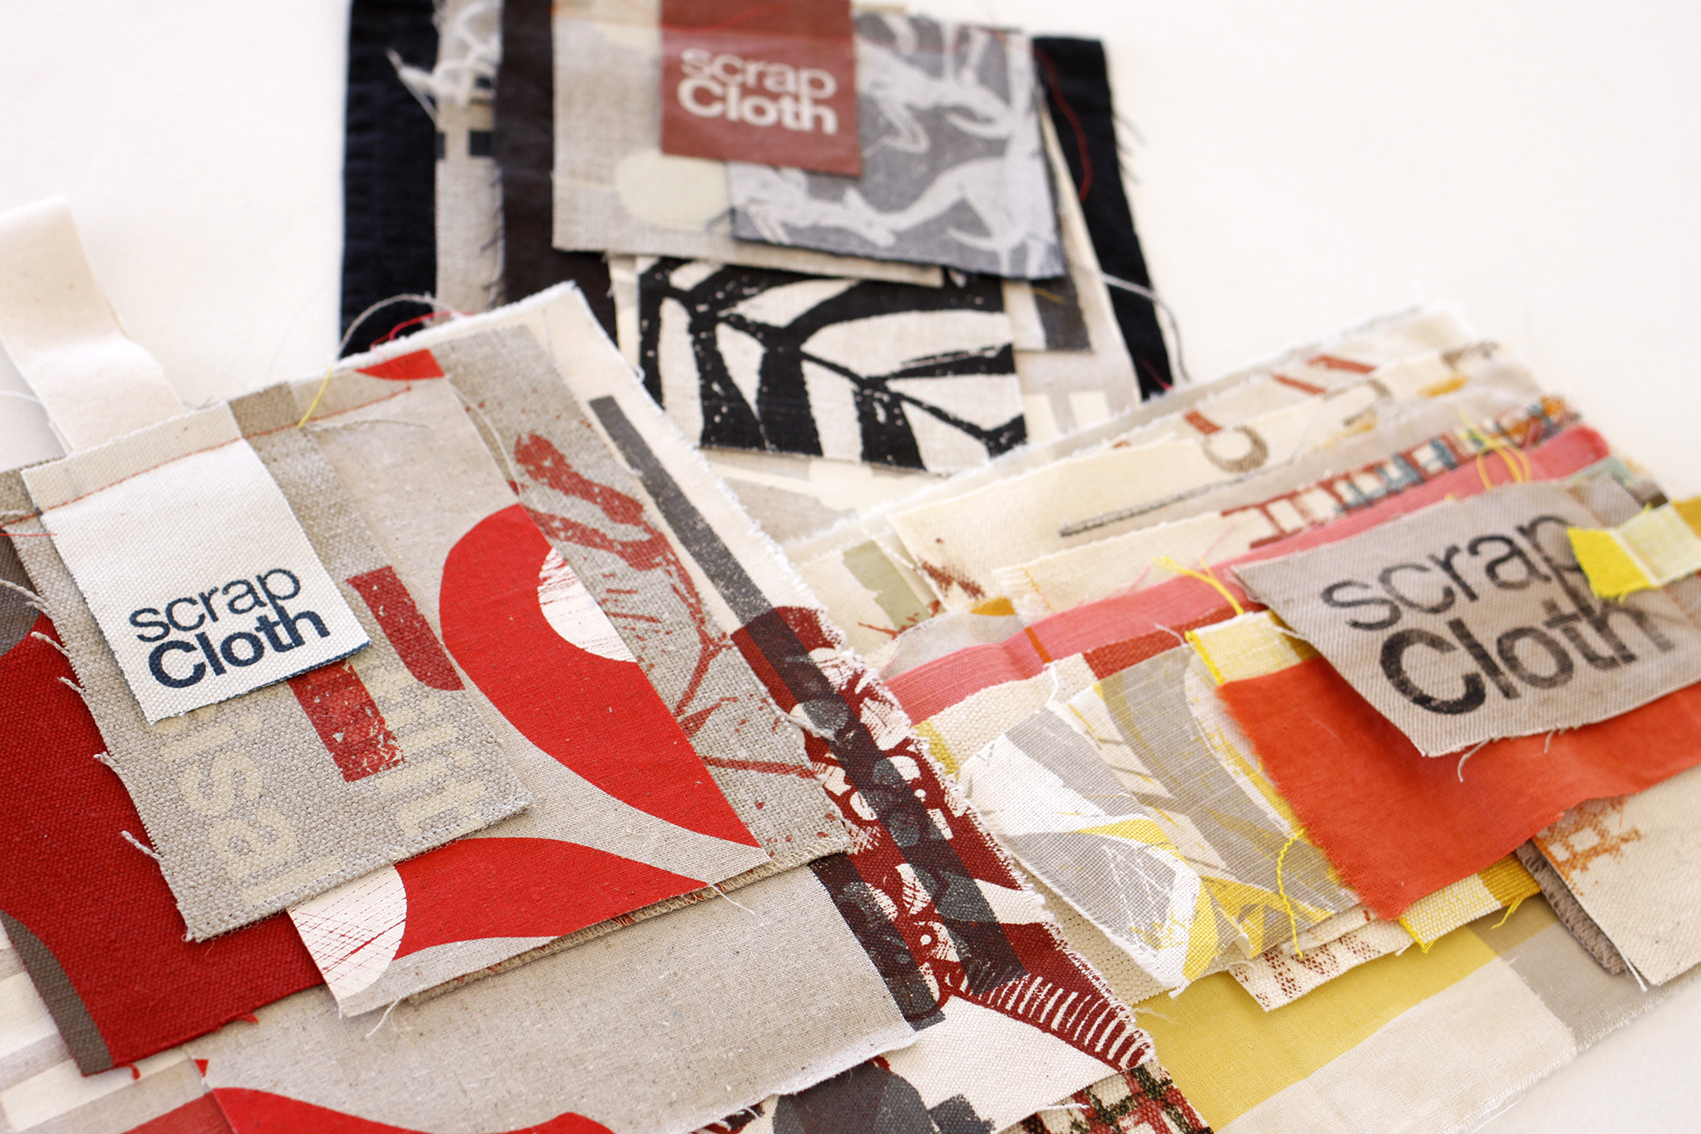 Scrap Cloth DIY Bundles by  Julie Paterson.